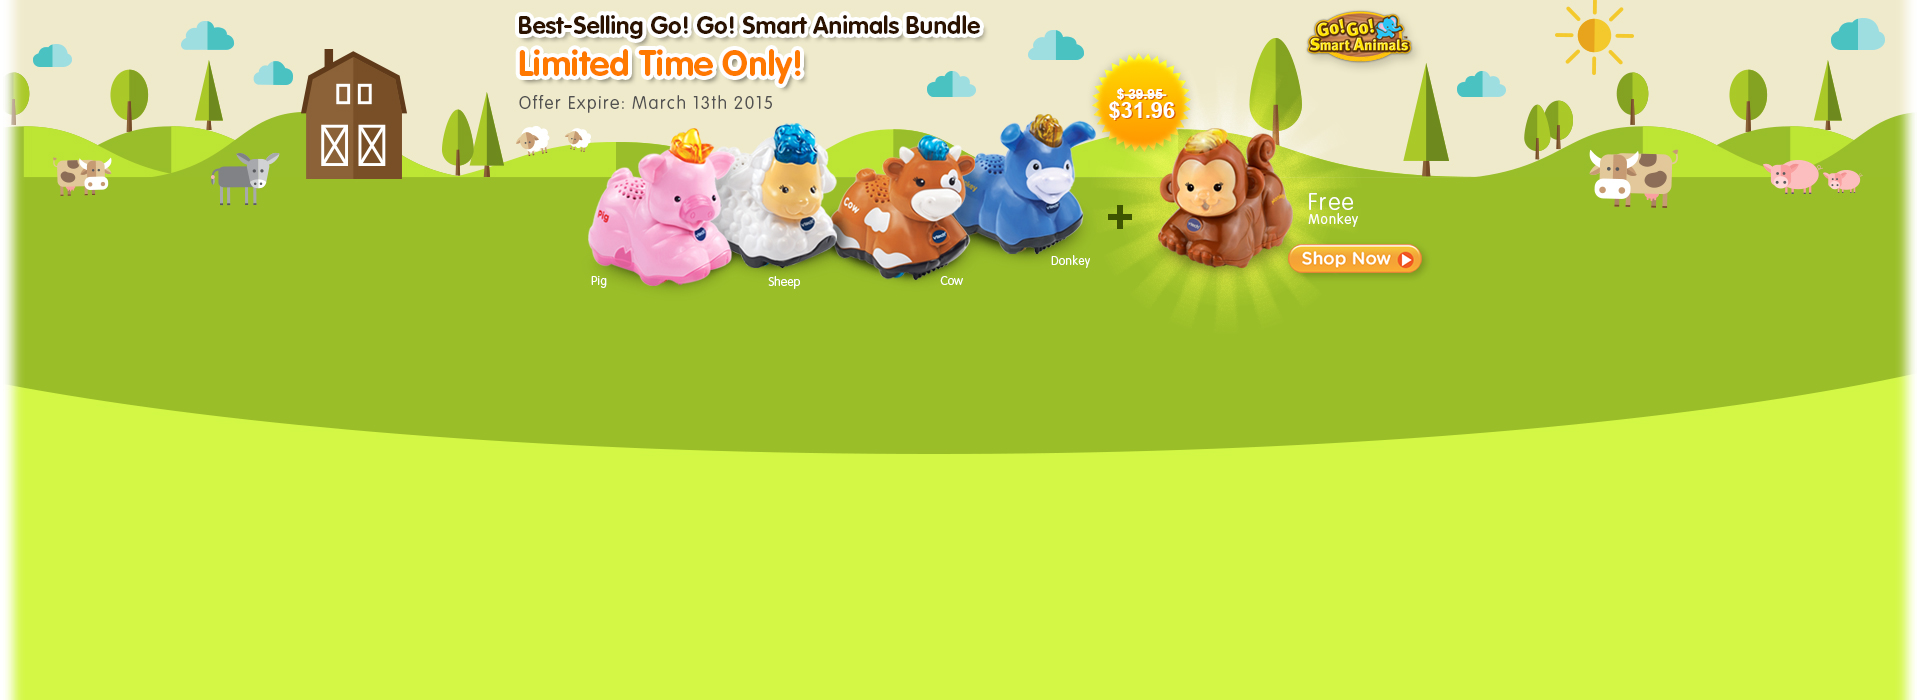 Best-Sellers Animals Buy 4 get 1 Free! Limited Time Only!